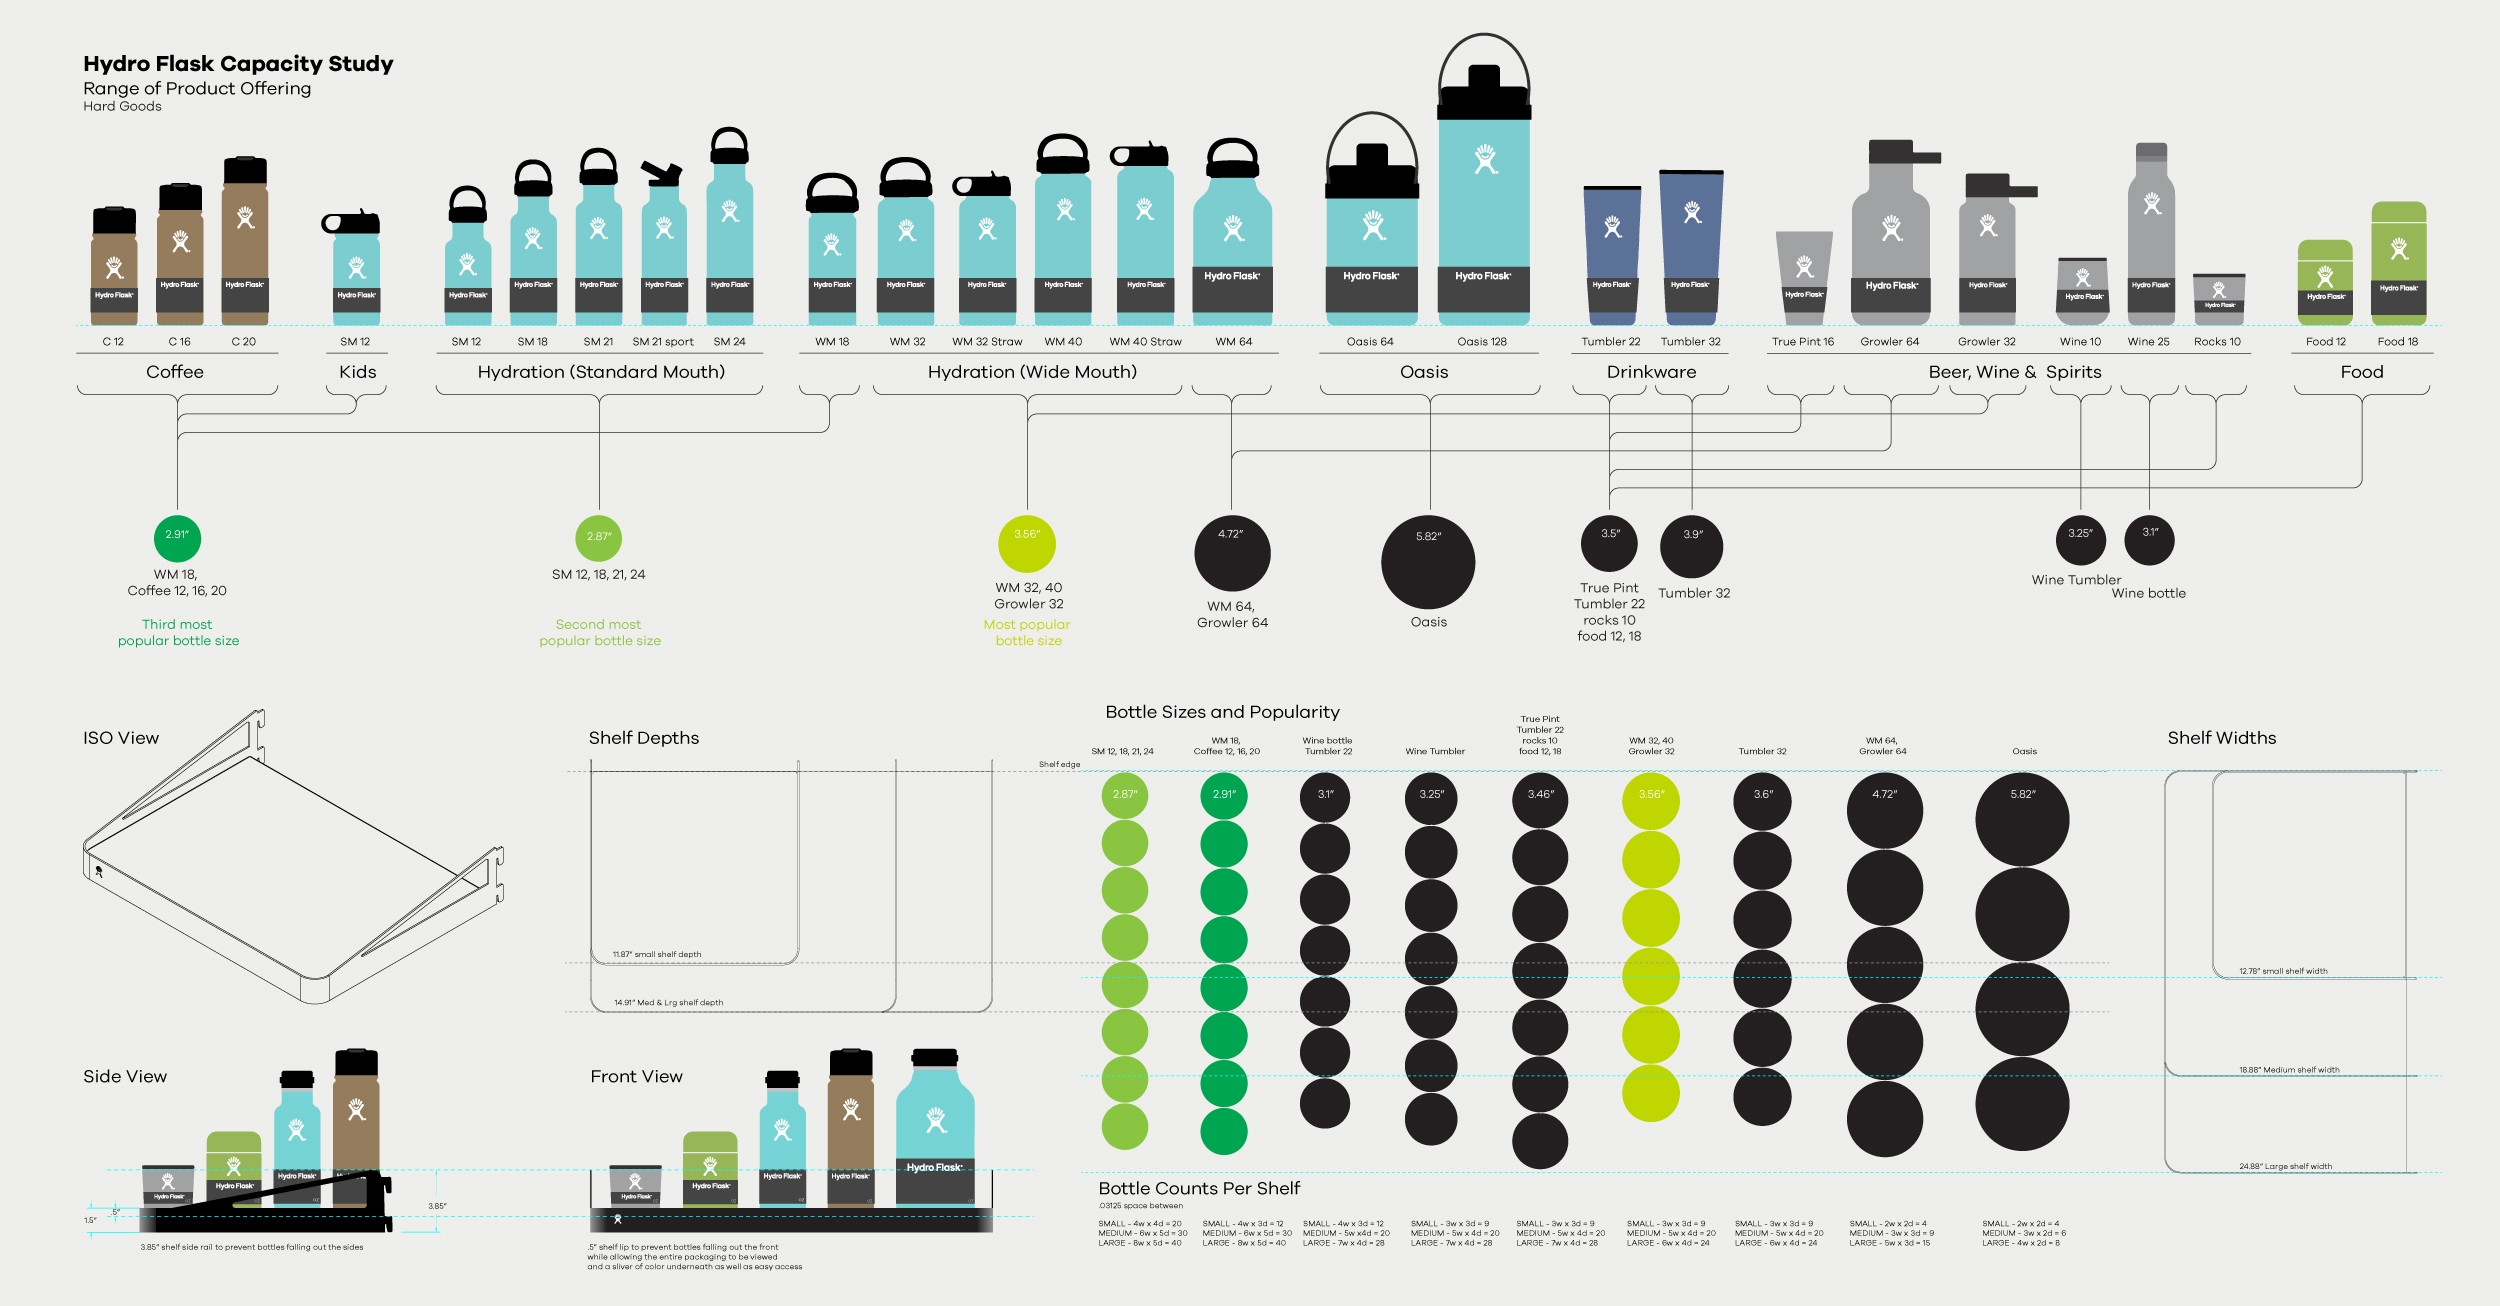 A diagram that shows the capacity study of hydro flask bottles